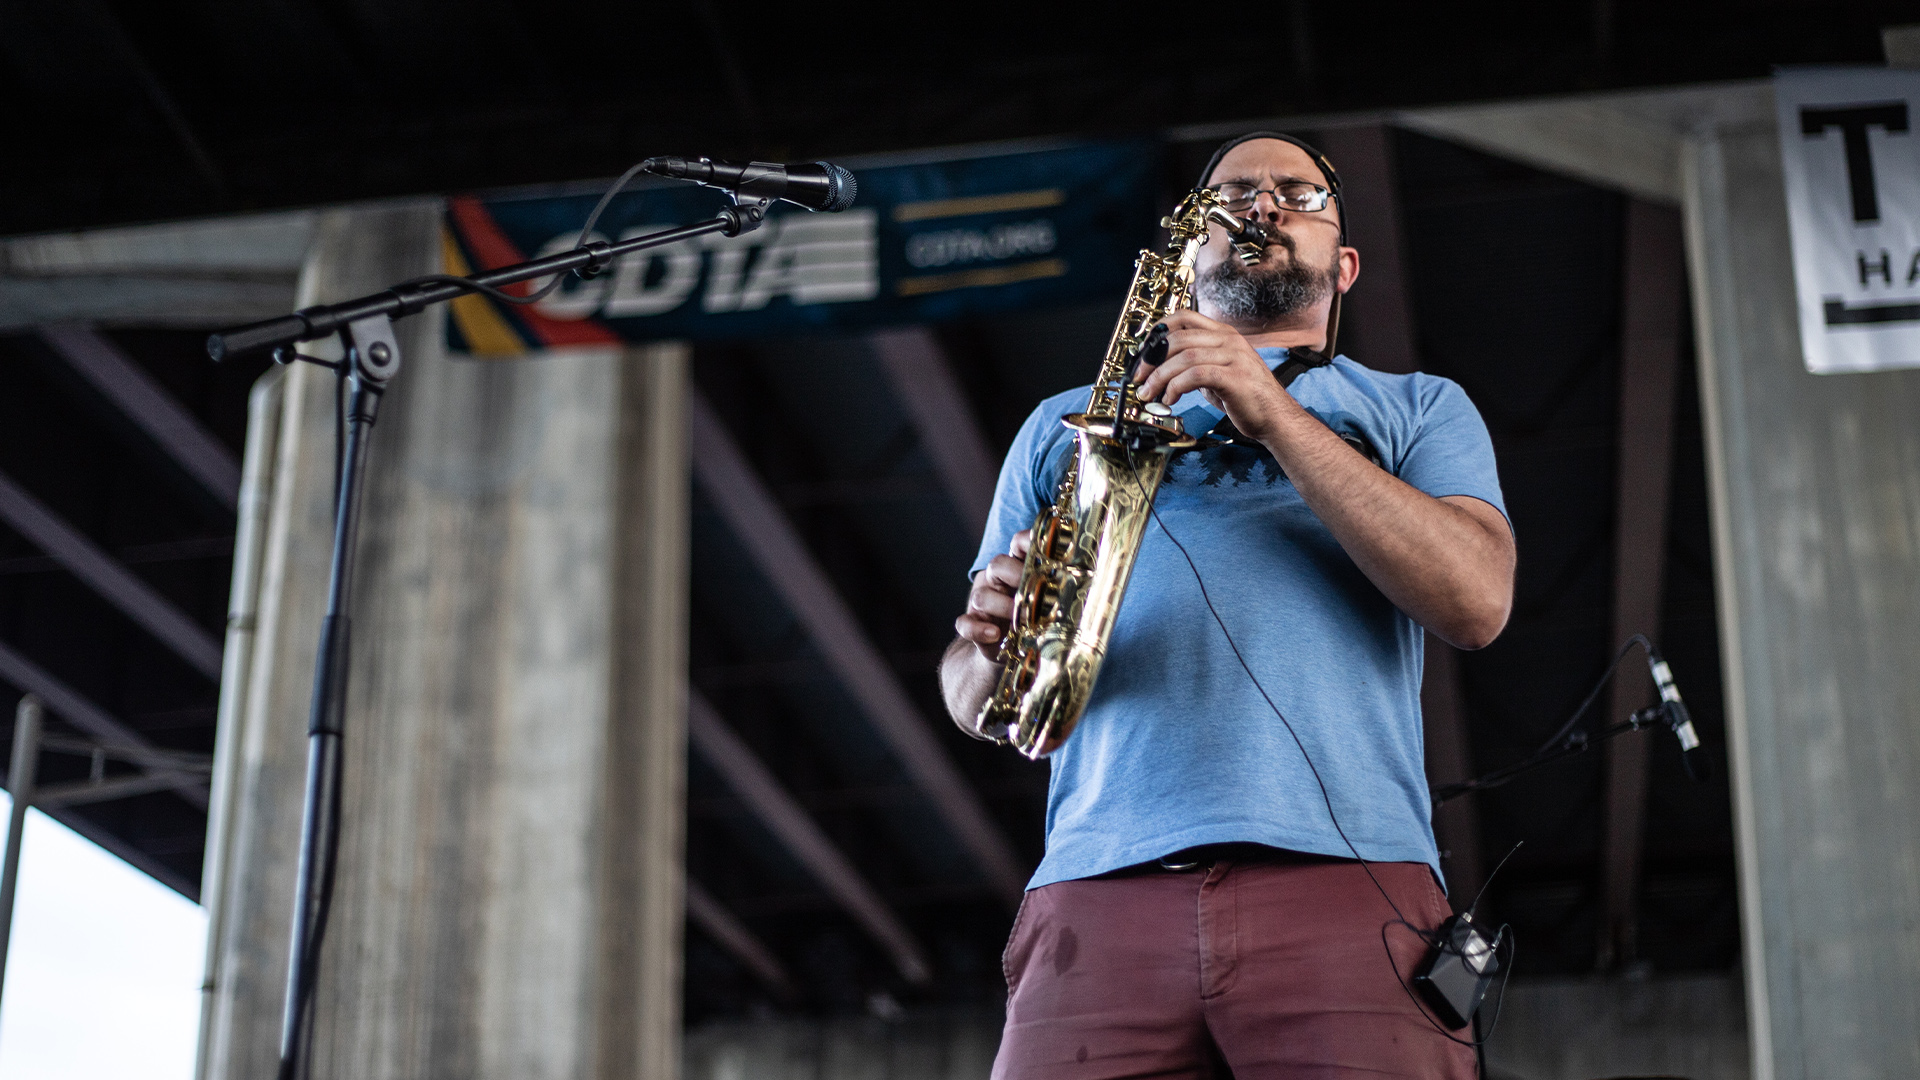 """VIDEO: Yam Yam Performs """"Not My Dog"""" at the 2021 Alive at 5 Concert Series"""